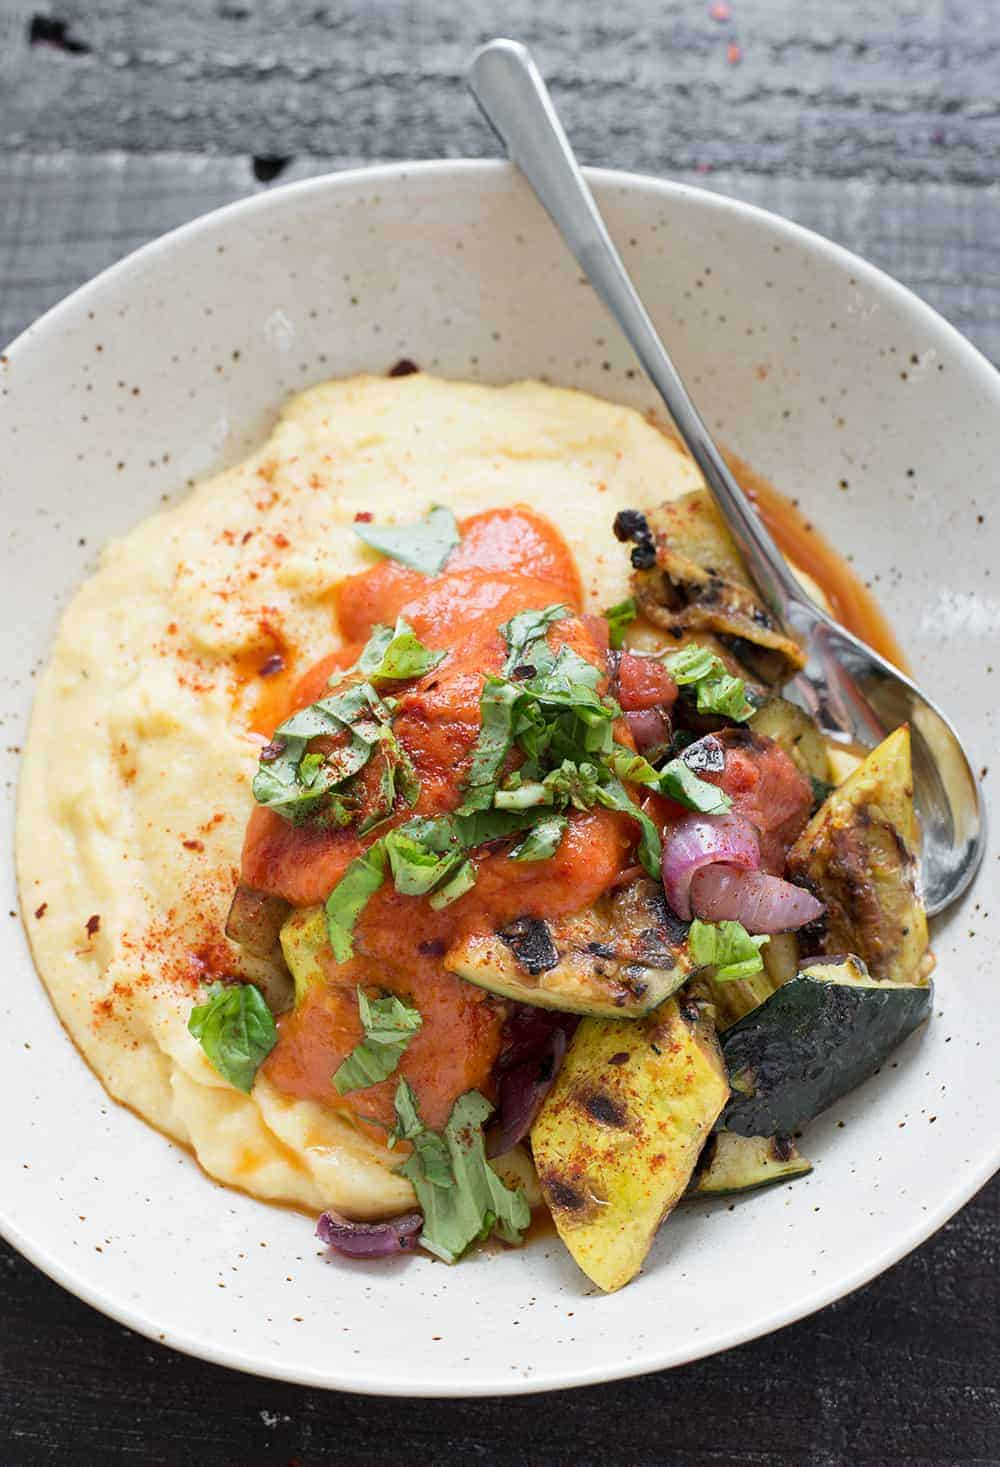 vegan polenta with grilled vegetables and red pepper sauce